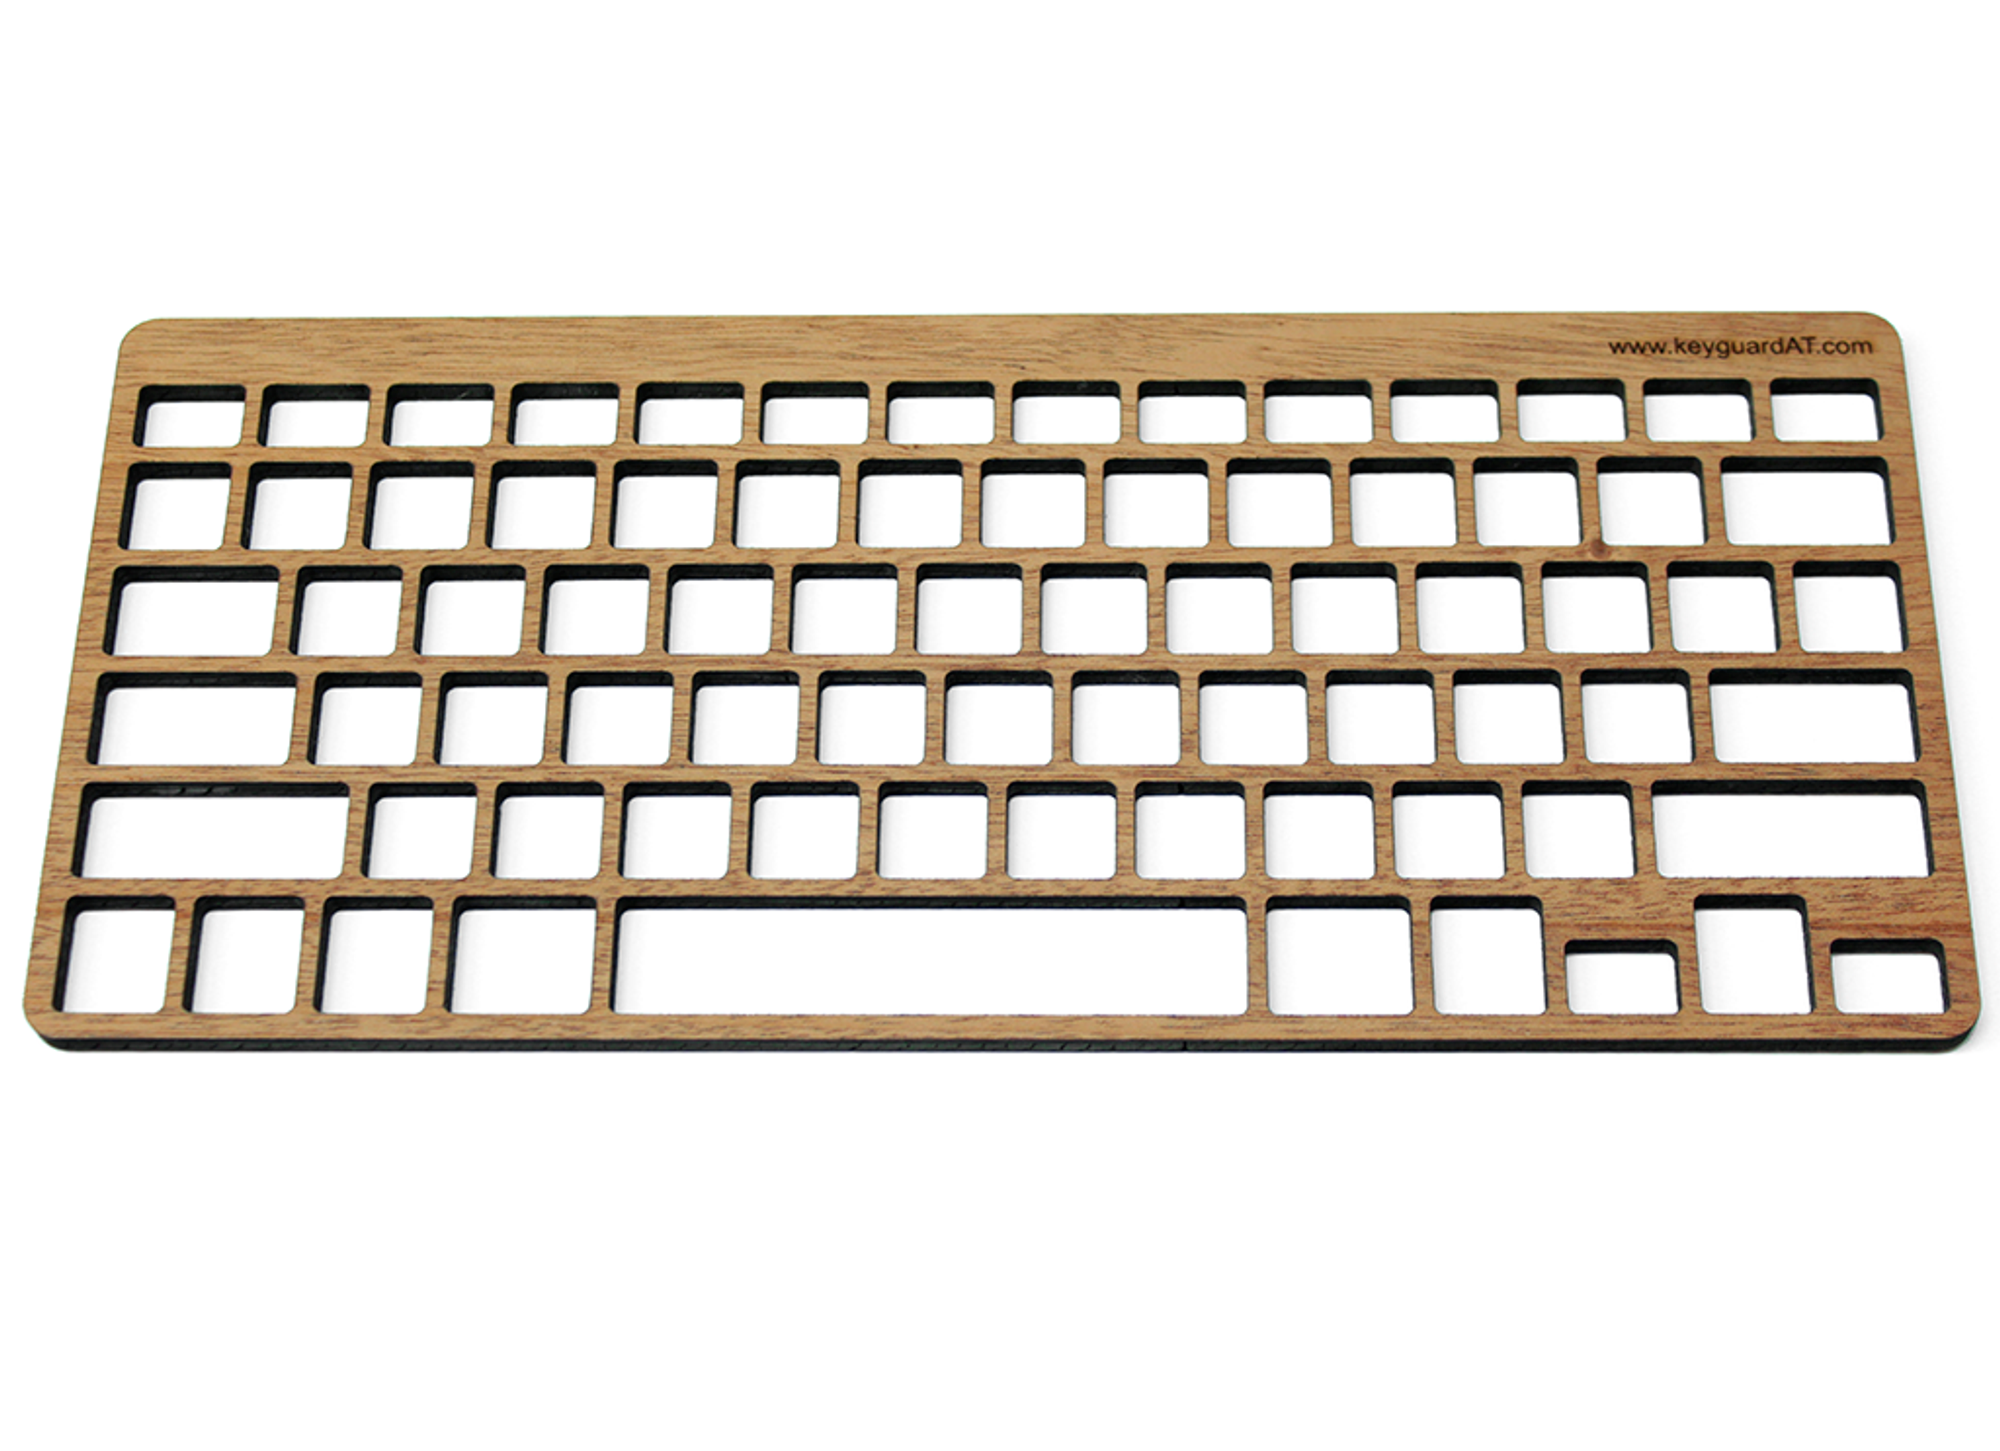 apple wireless keyboard use with pc